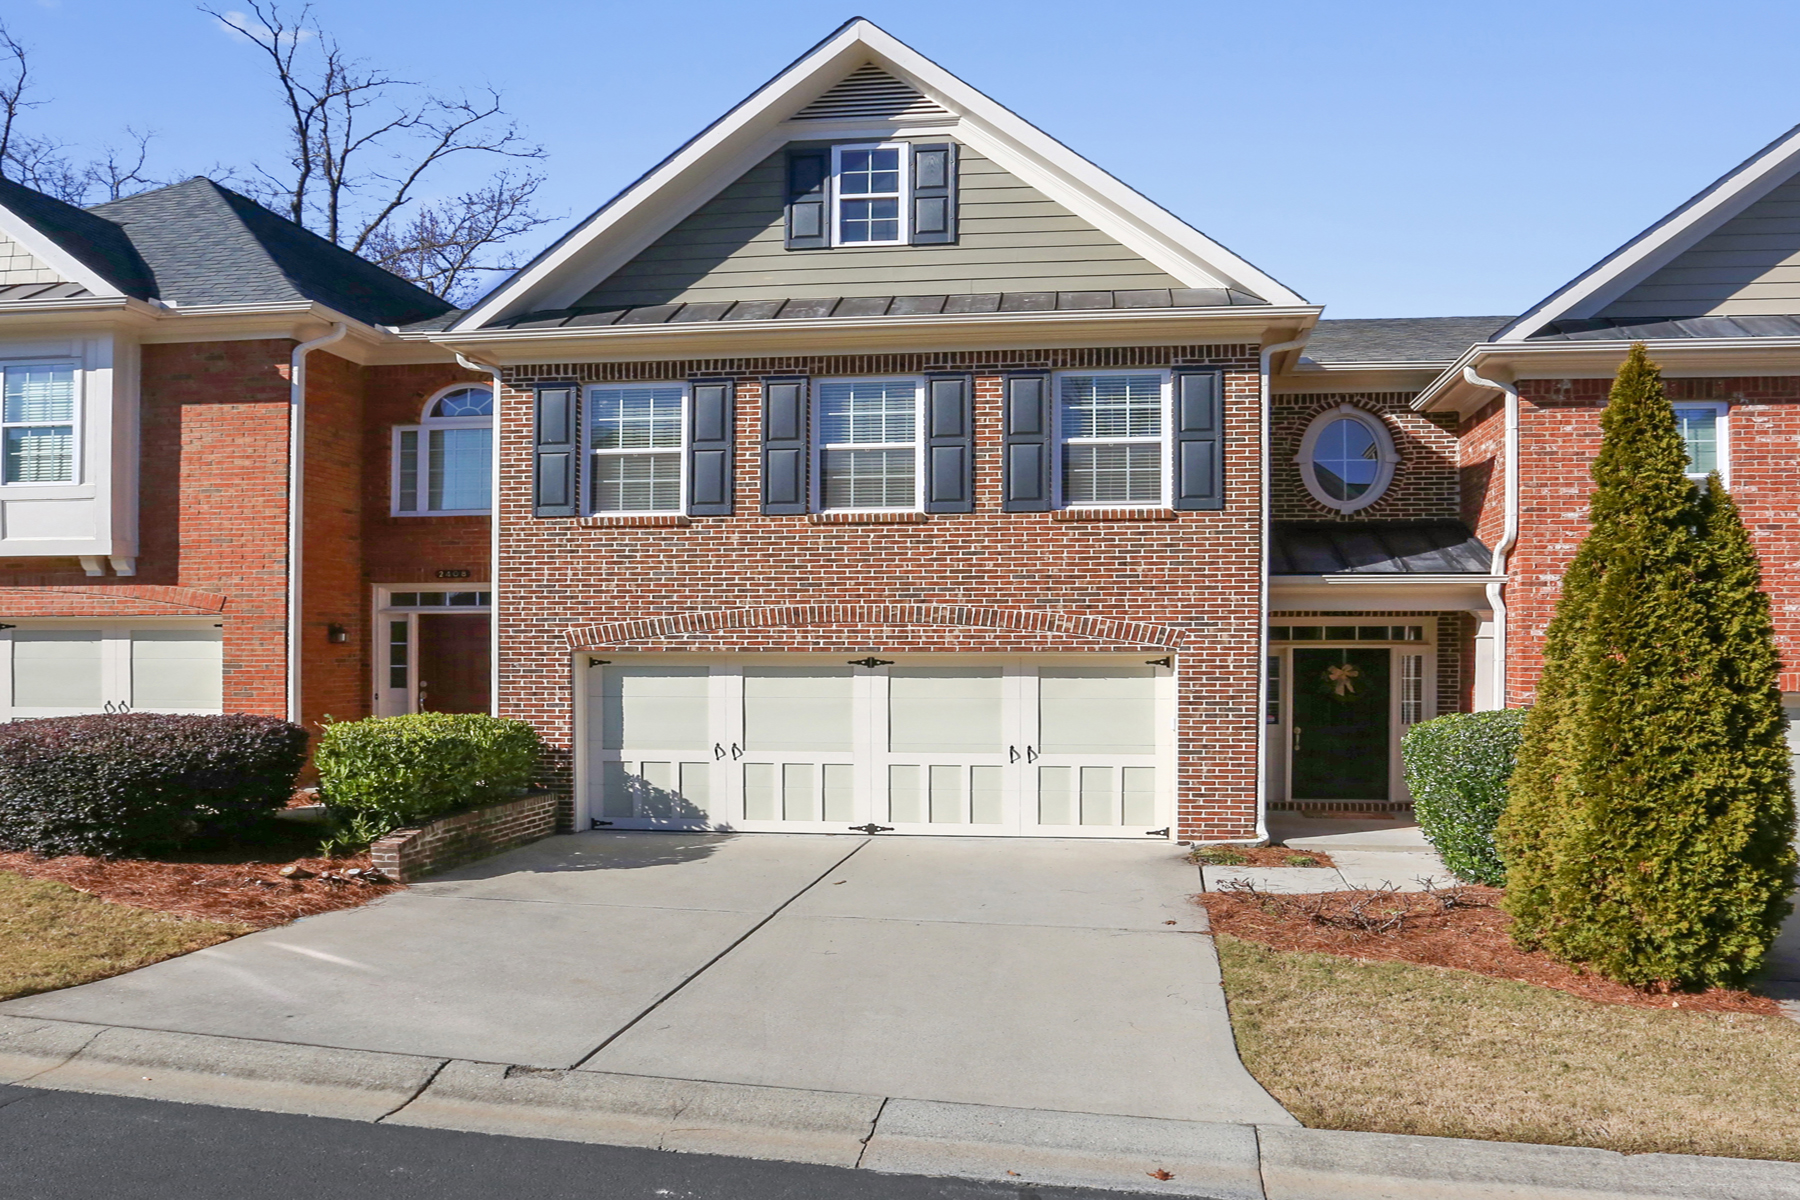 Condominium for Sale at Villages at Huntcrest in Gwinnett 2410 Strand Avenue Lawrenceville, Georgia 30043 United States